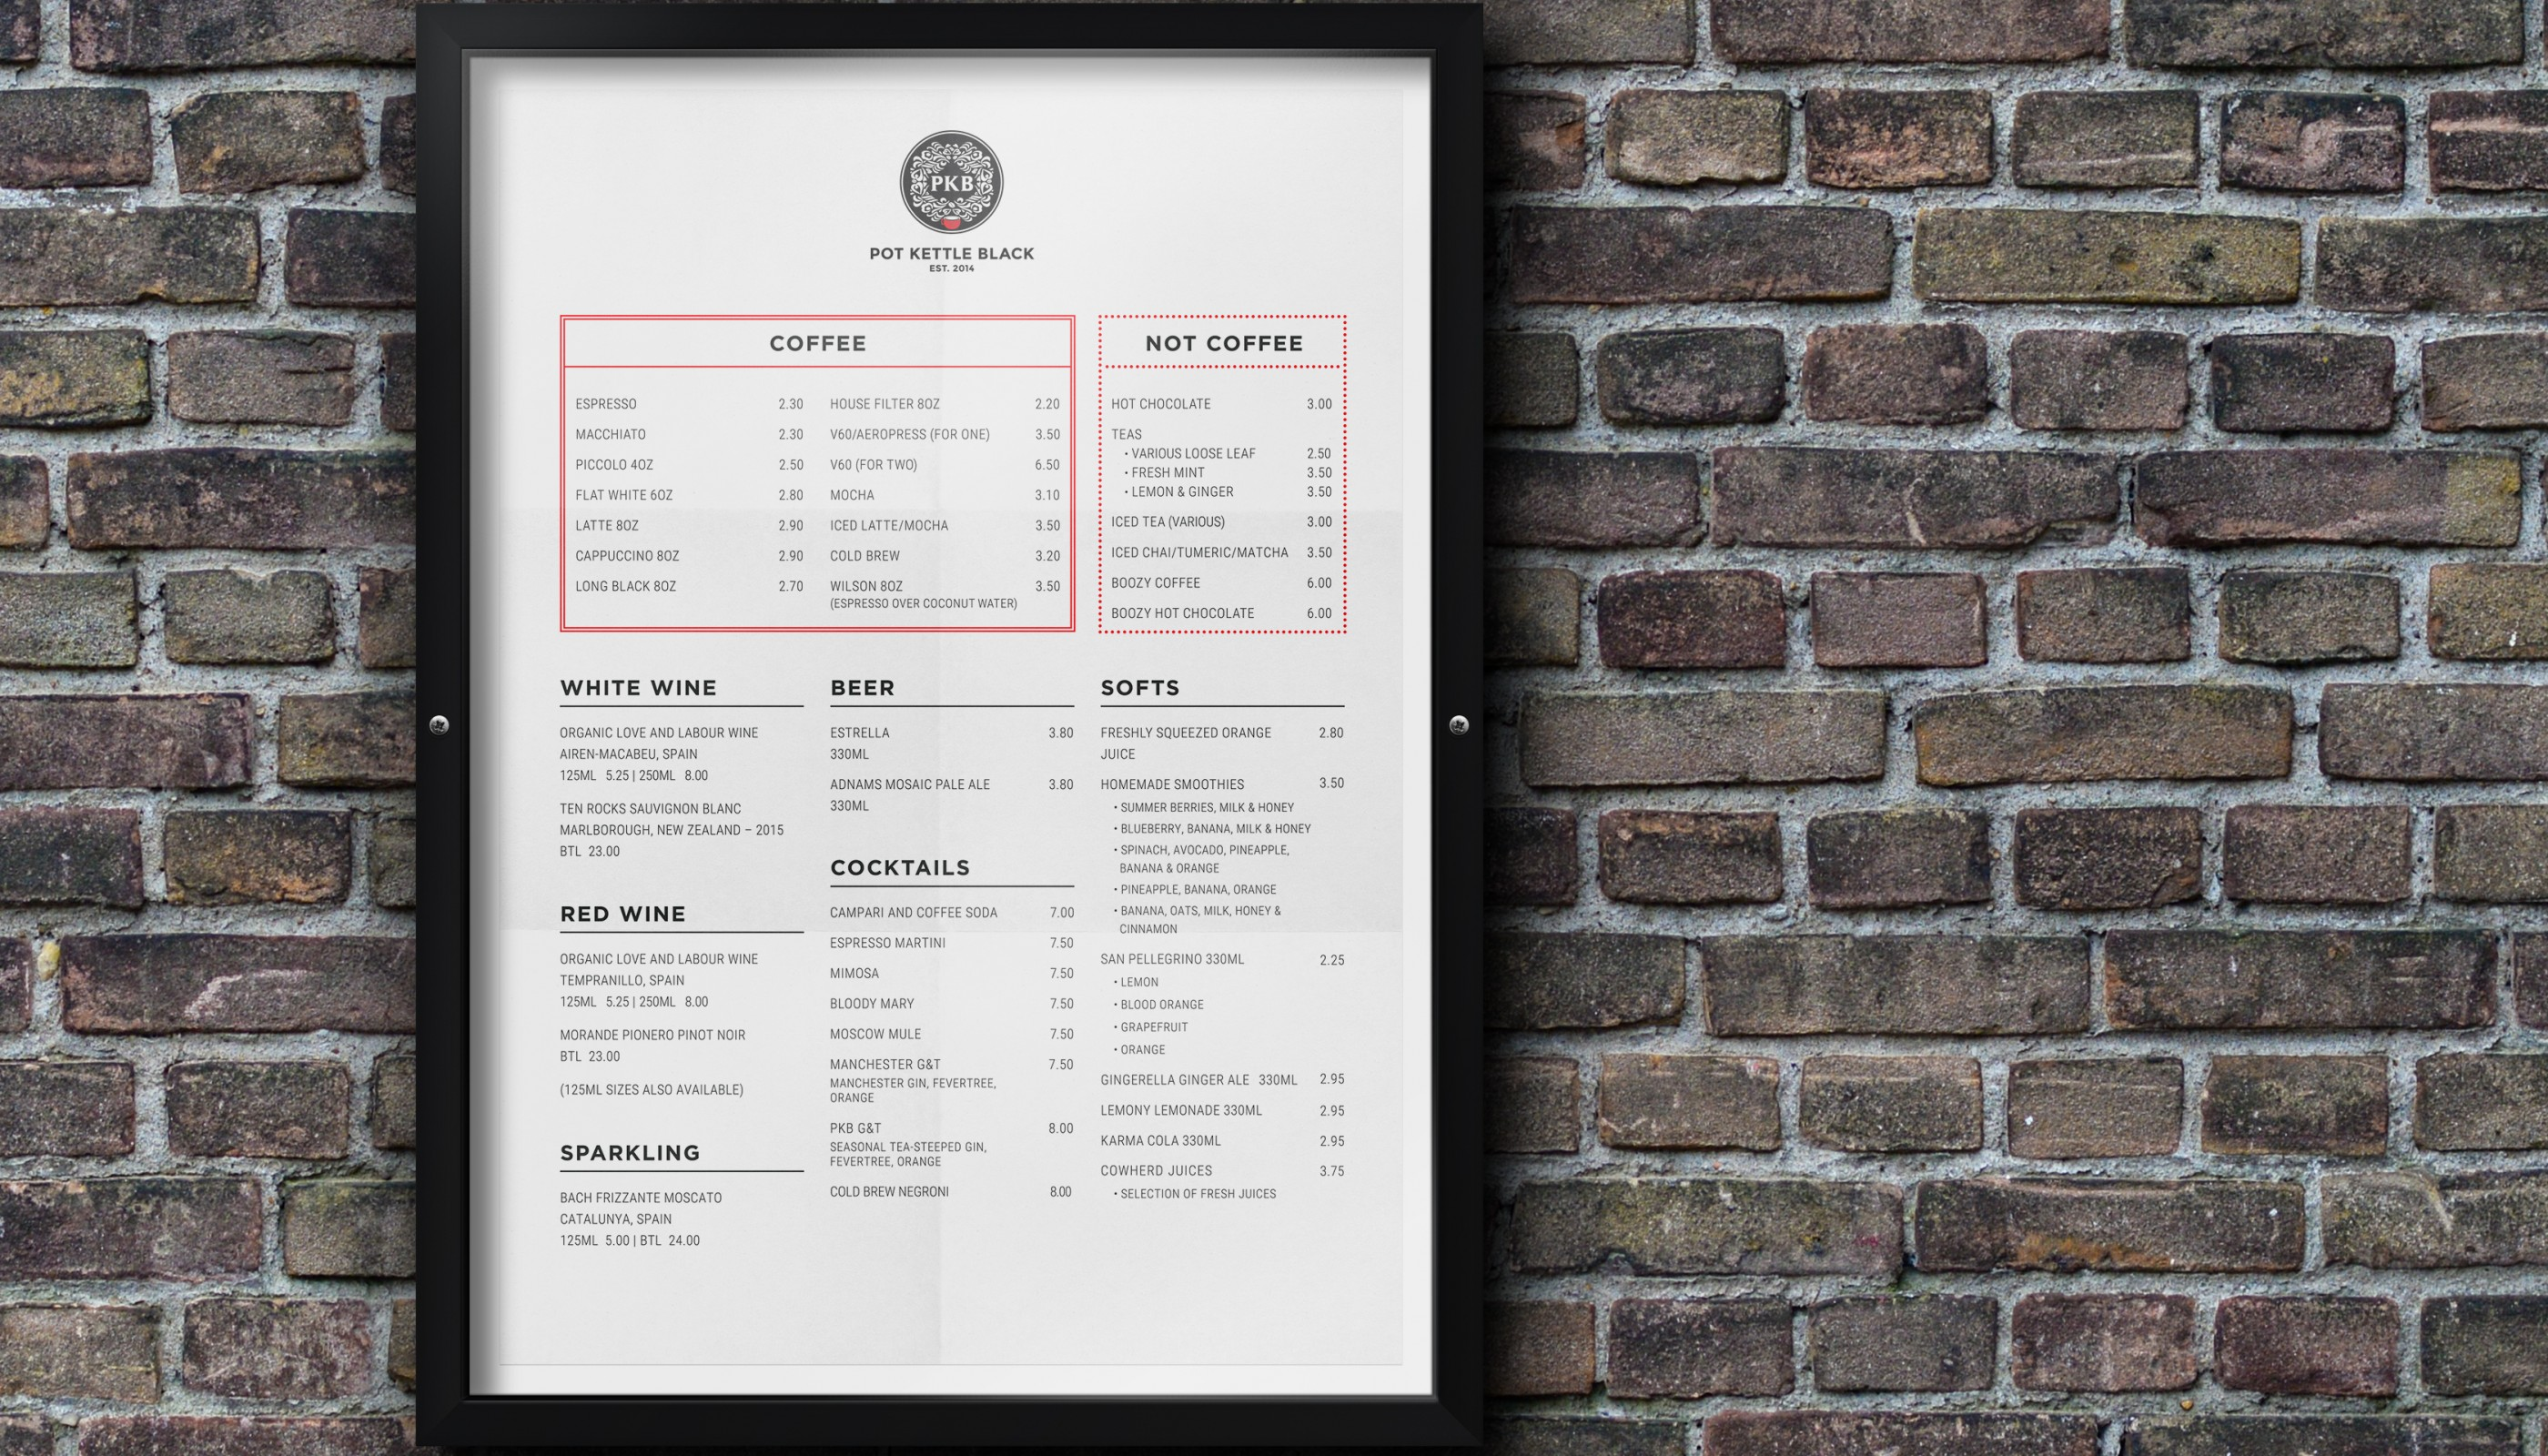 Barton Arcade Manchester, the menu for Pot Kettle Black whose website we created